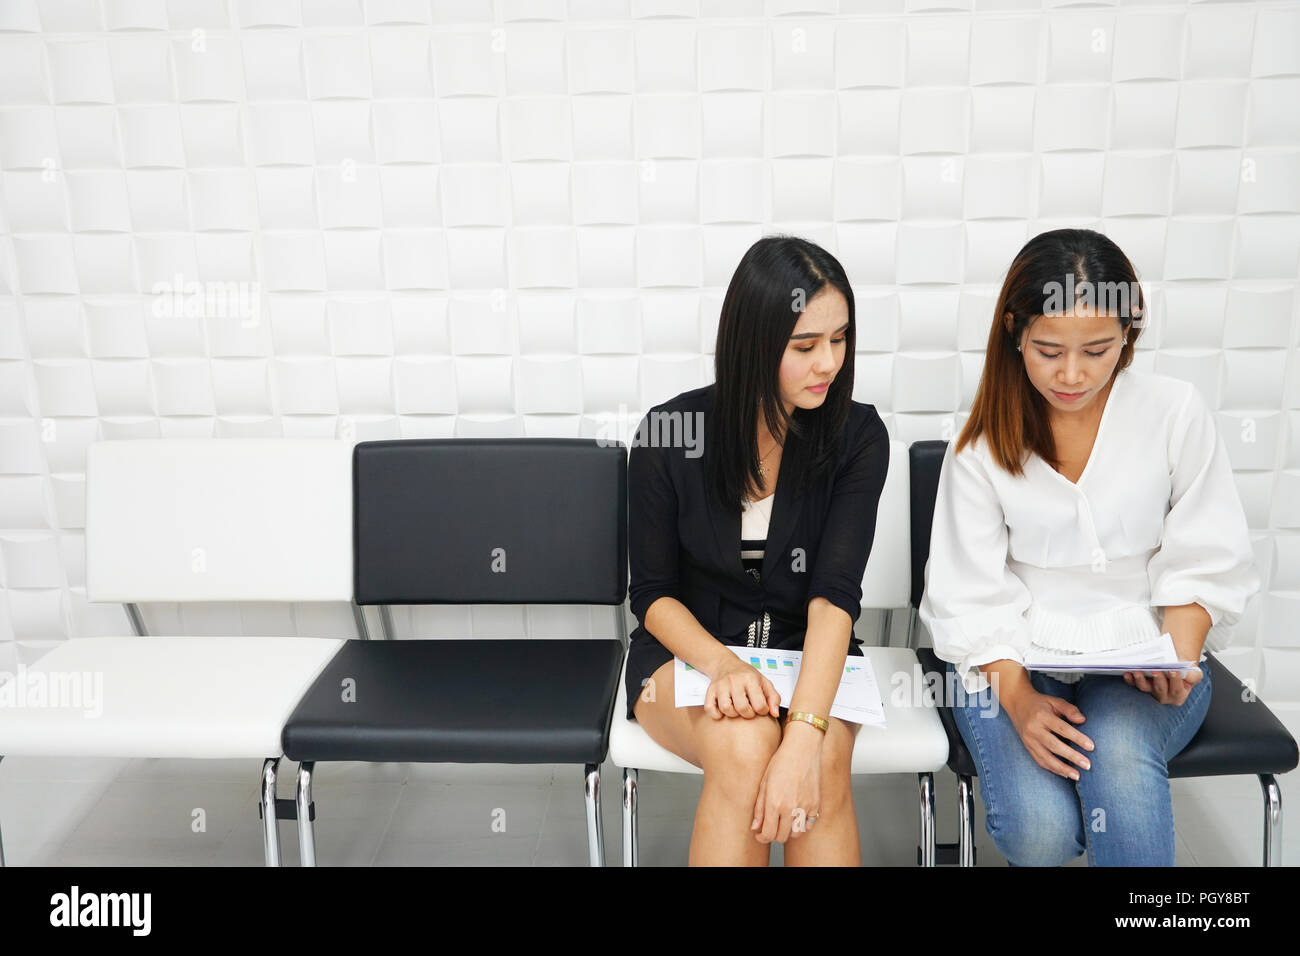 Two women wait for waiting for an interview. - Stock Image